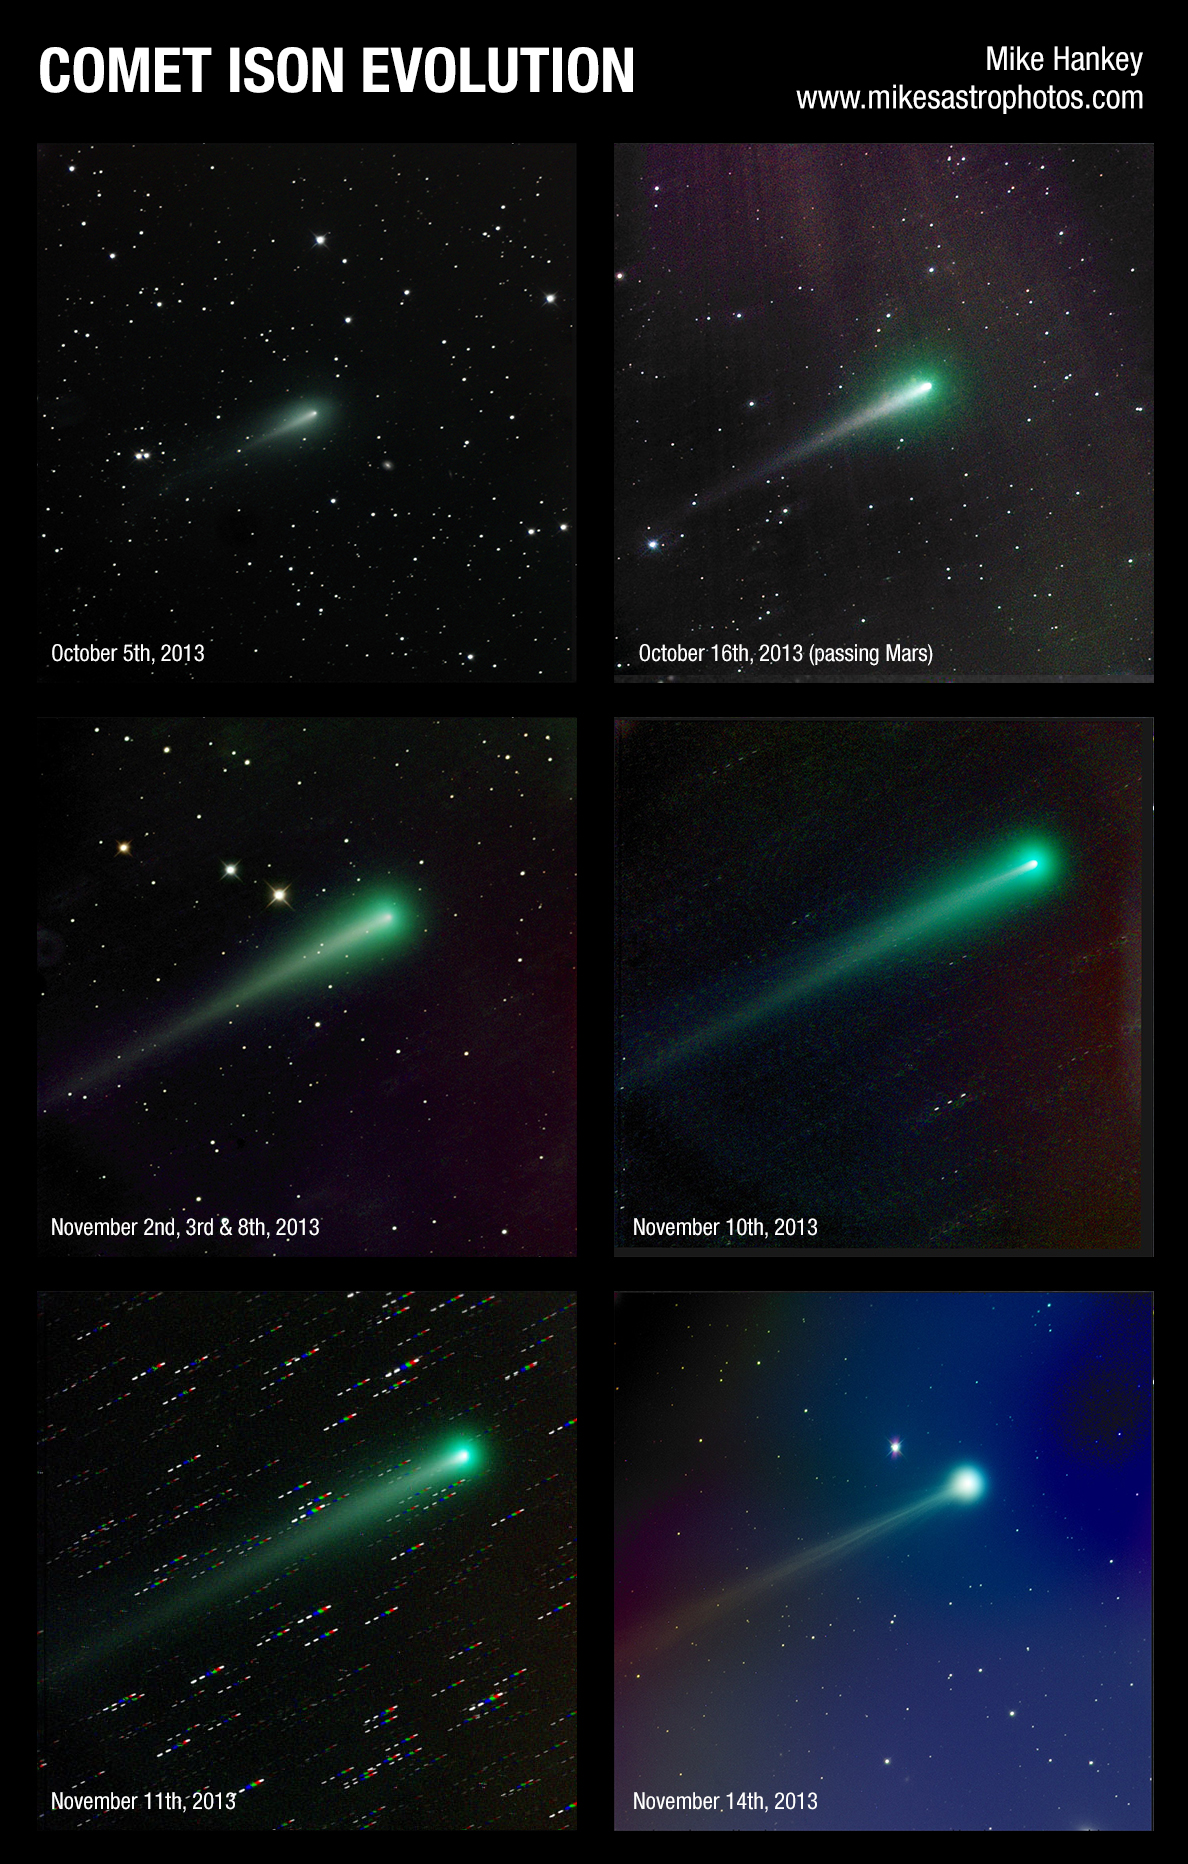 ISON Evolution by Mike Hankey